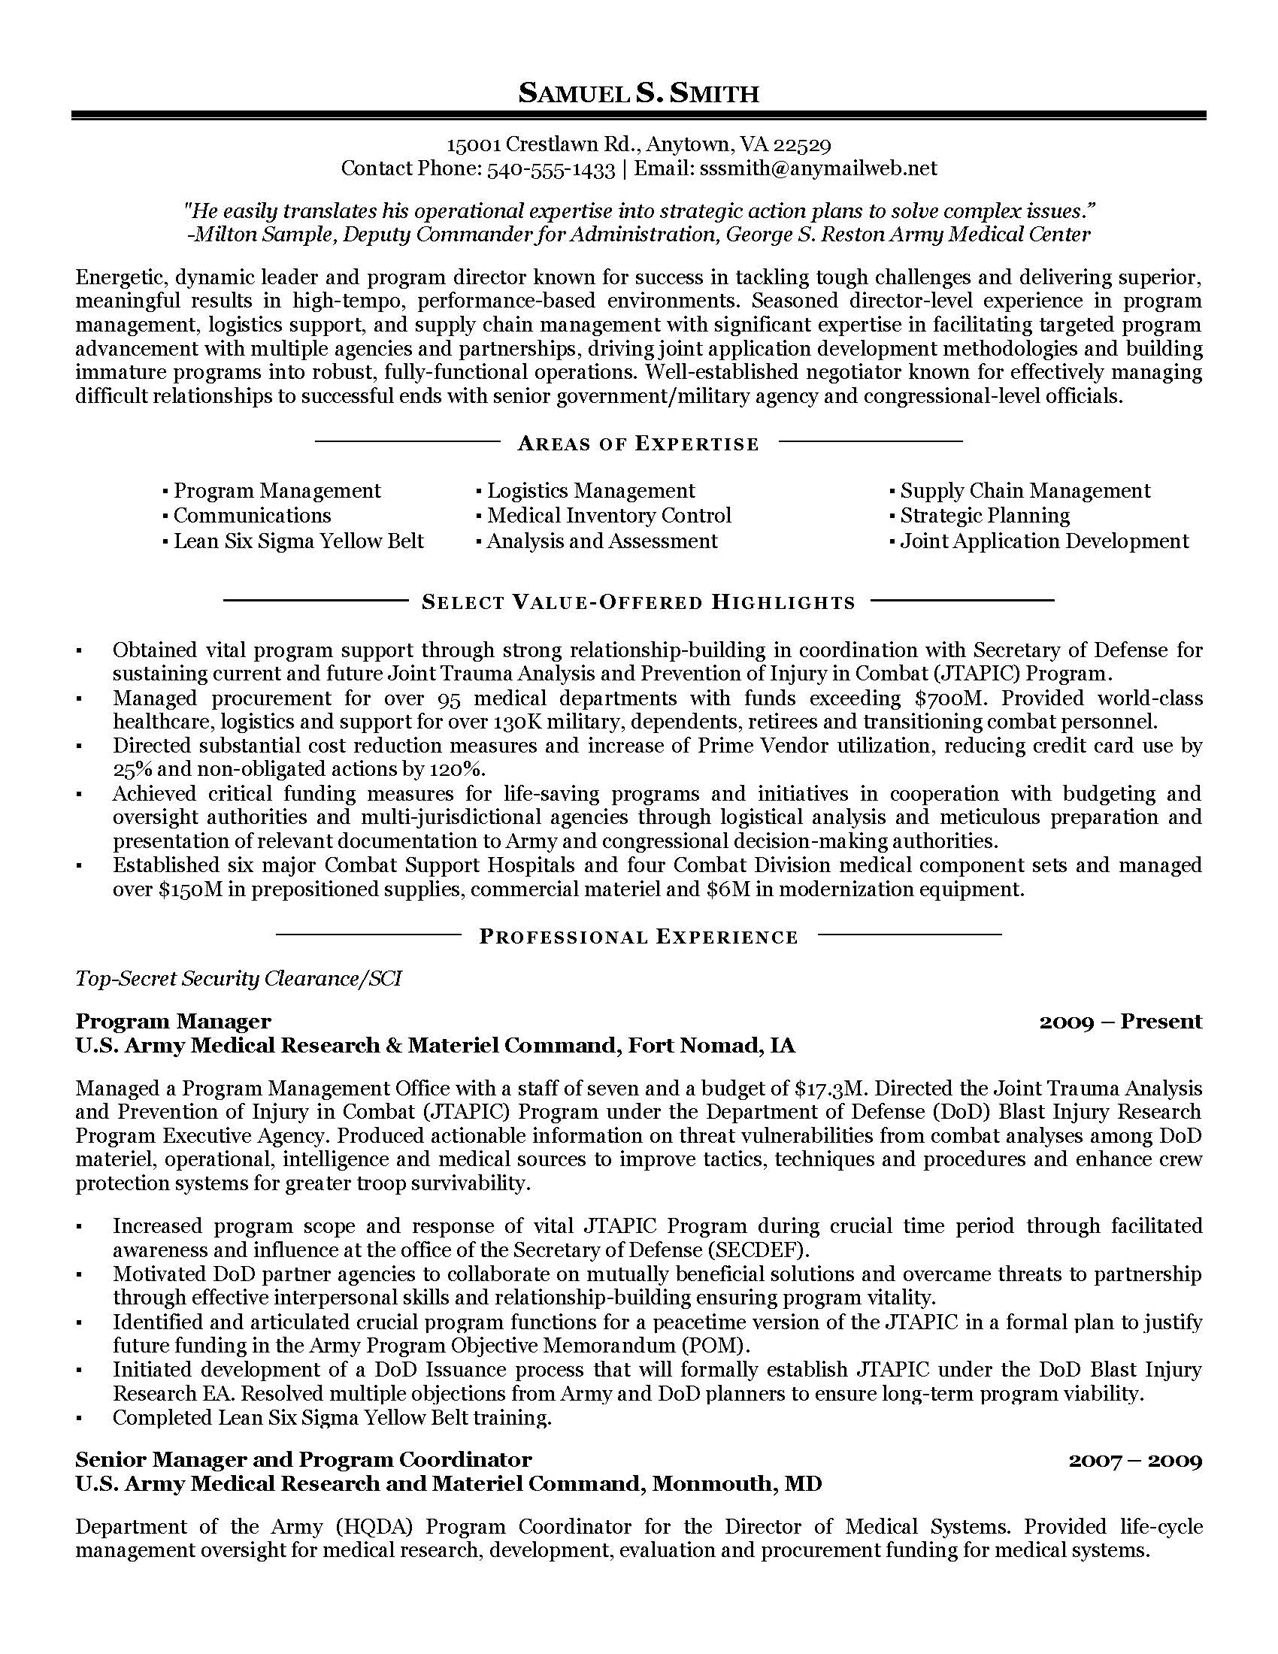 military resume samples examples writers federal writing services for veterans transition Resume Federal Resume Writing Services For Veterans